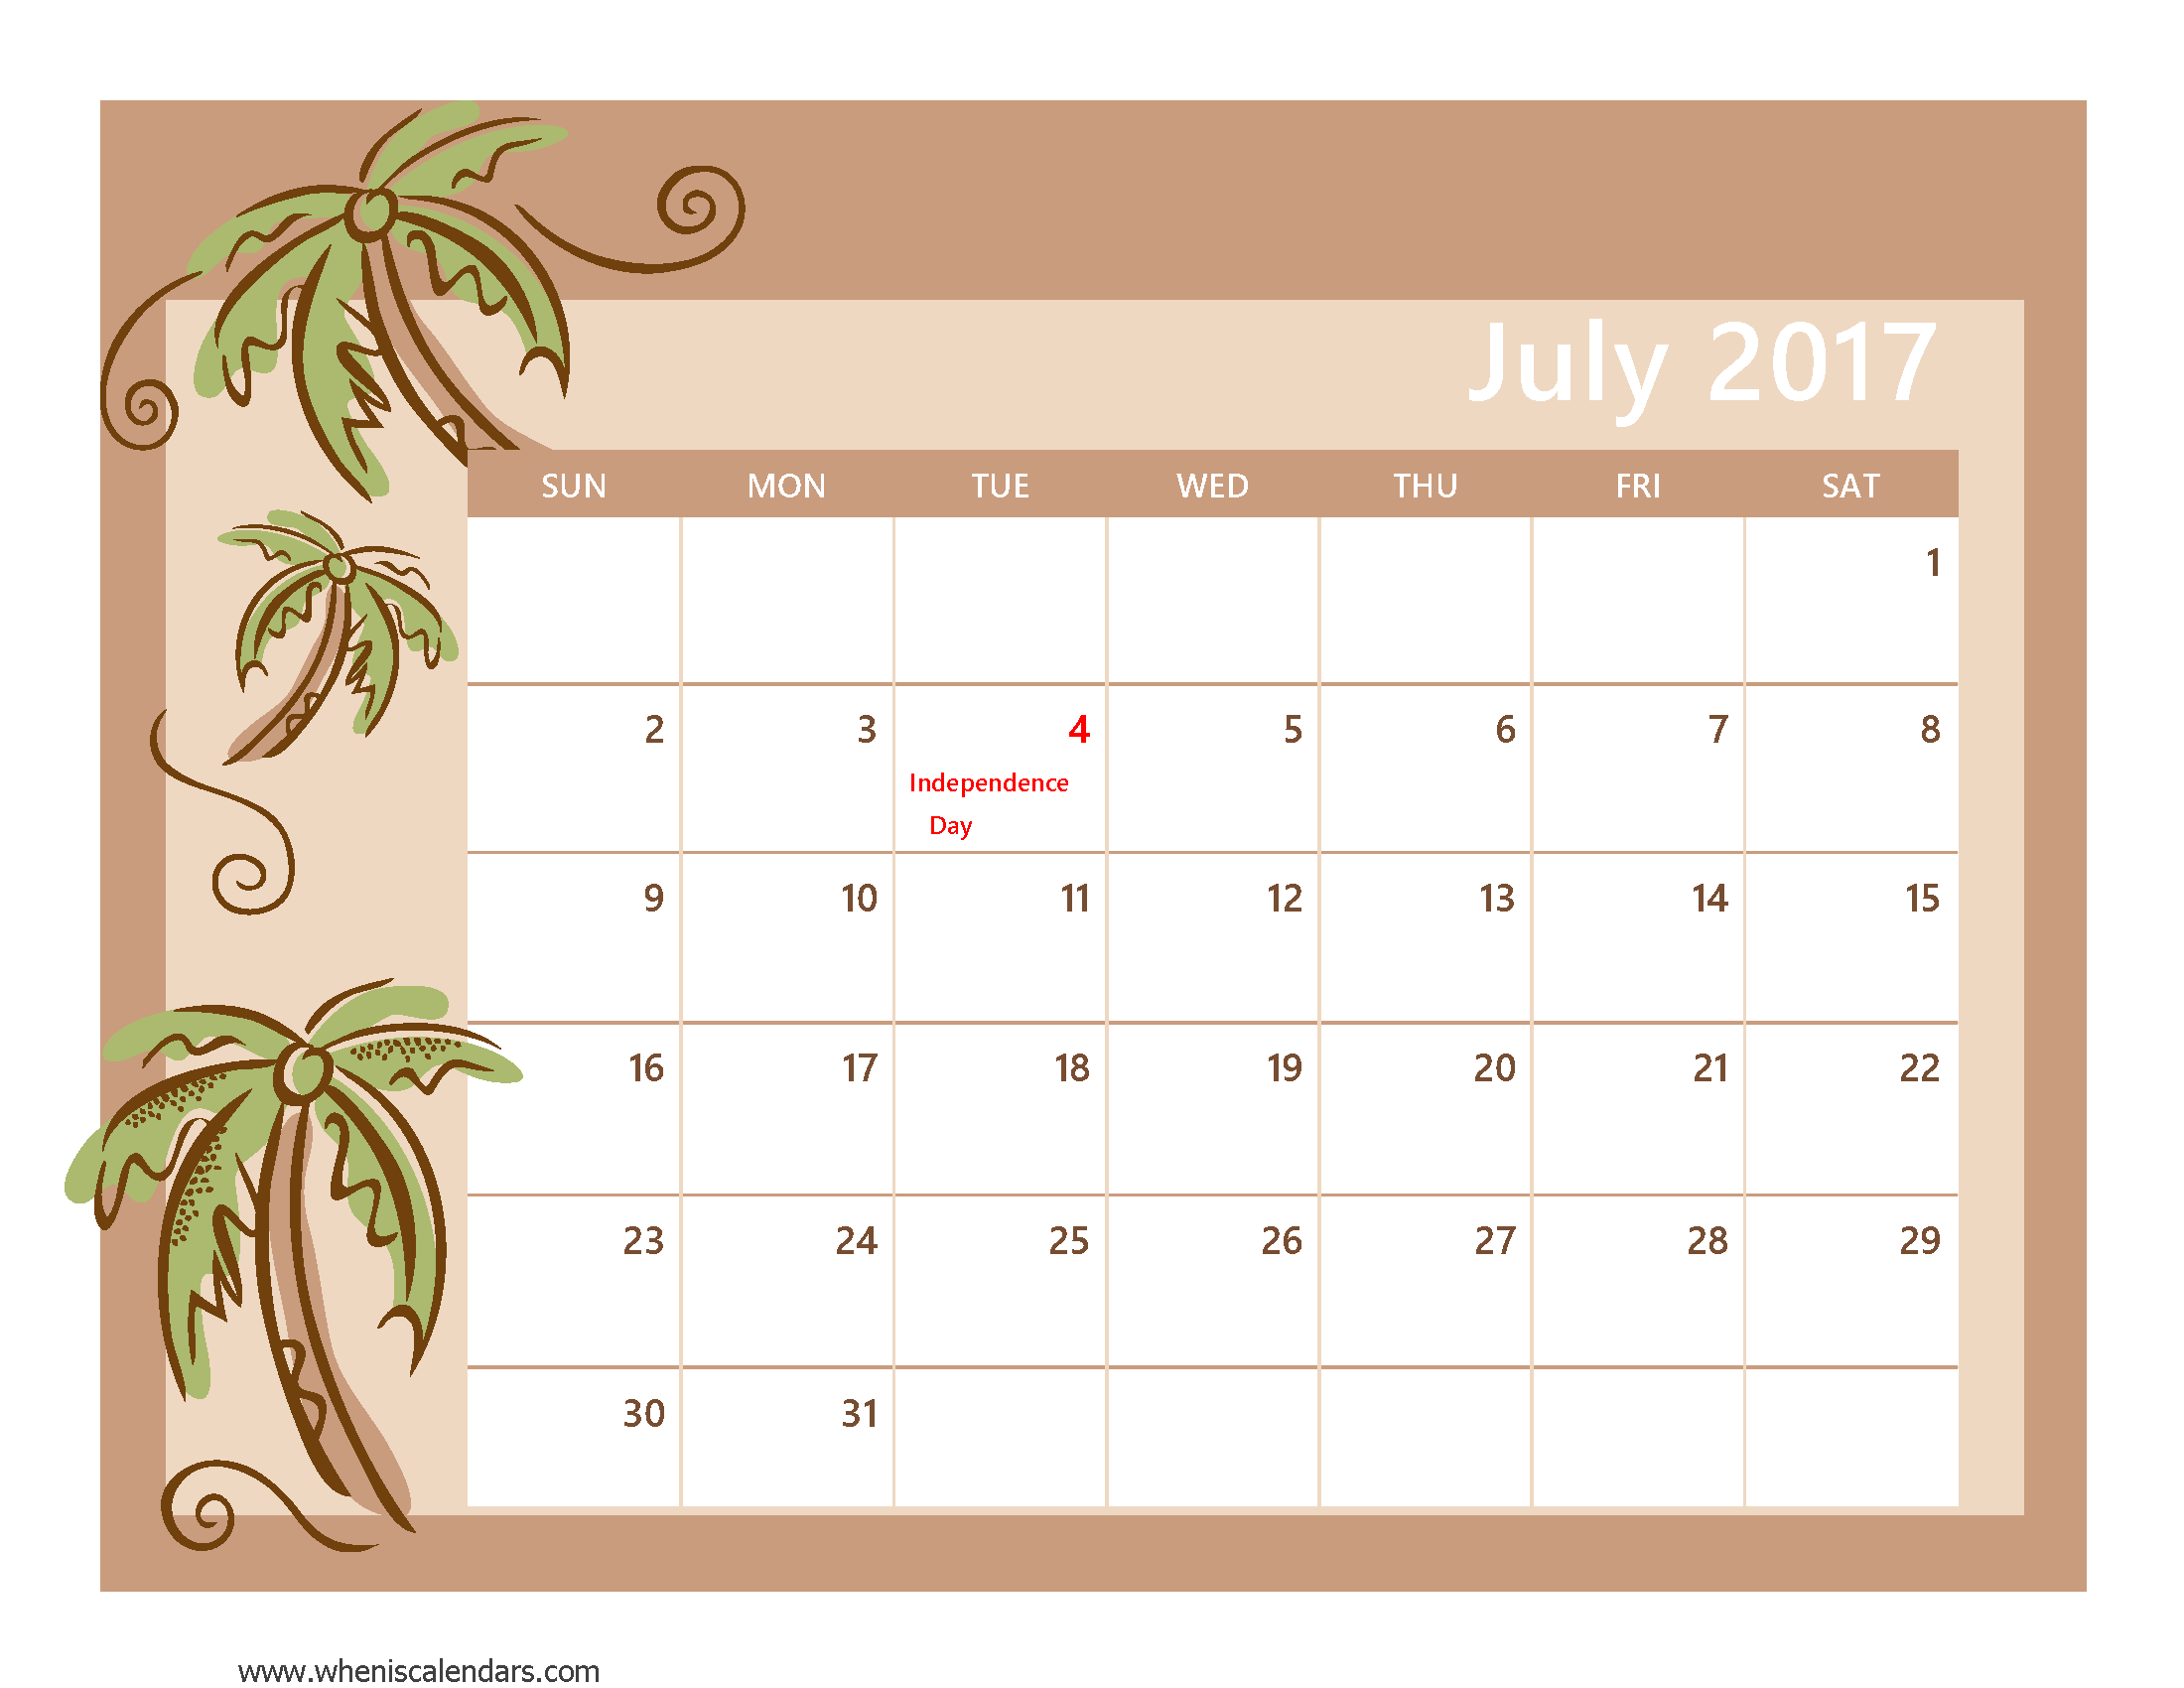 printable July2017 when is calendars - Yahoo Image Search Results ...